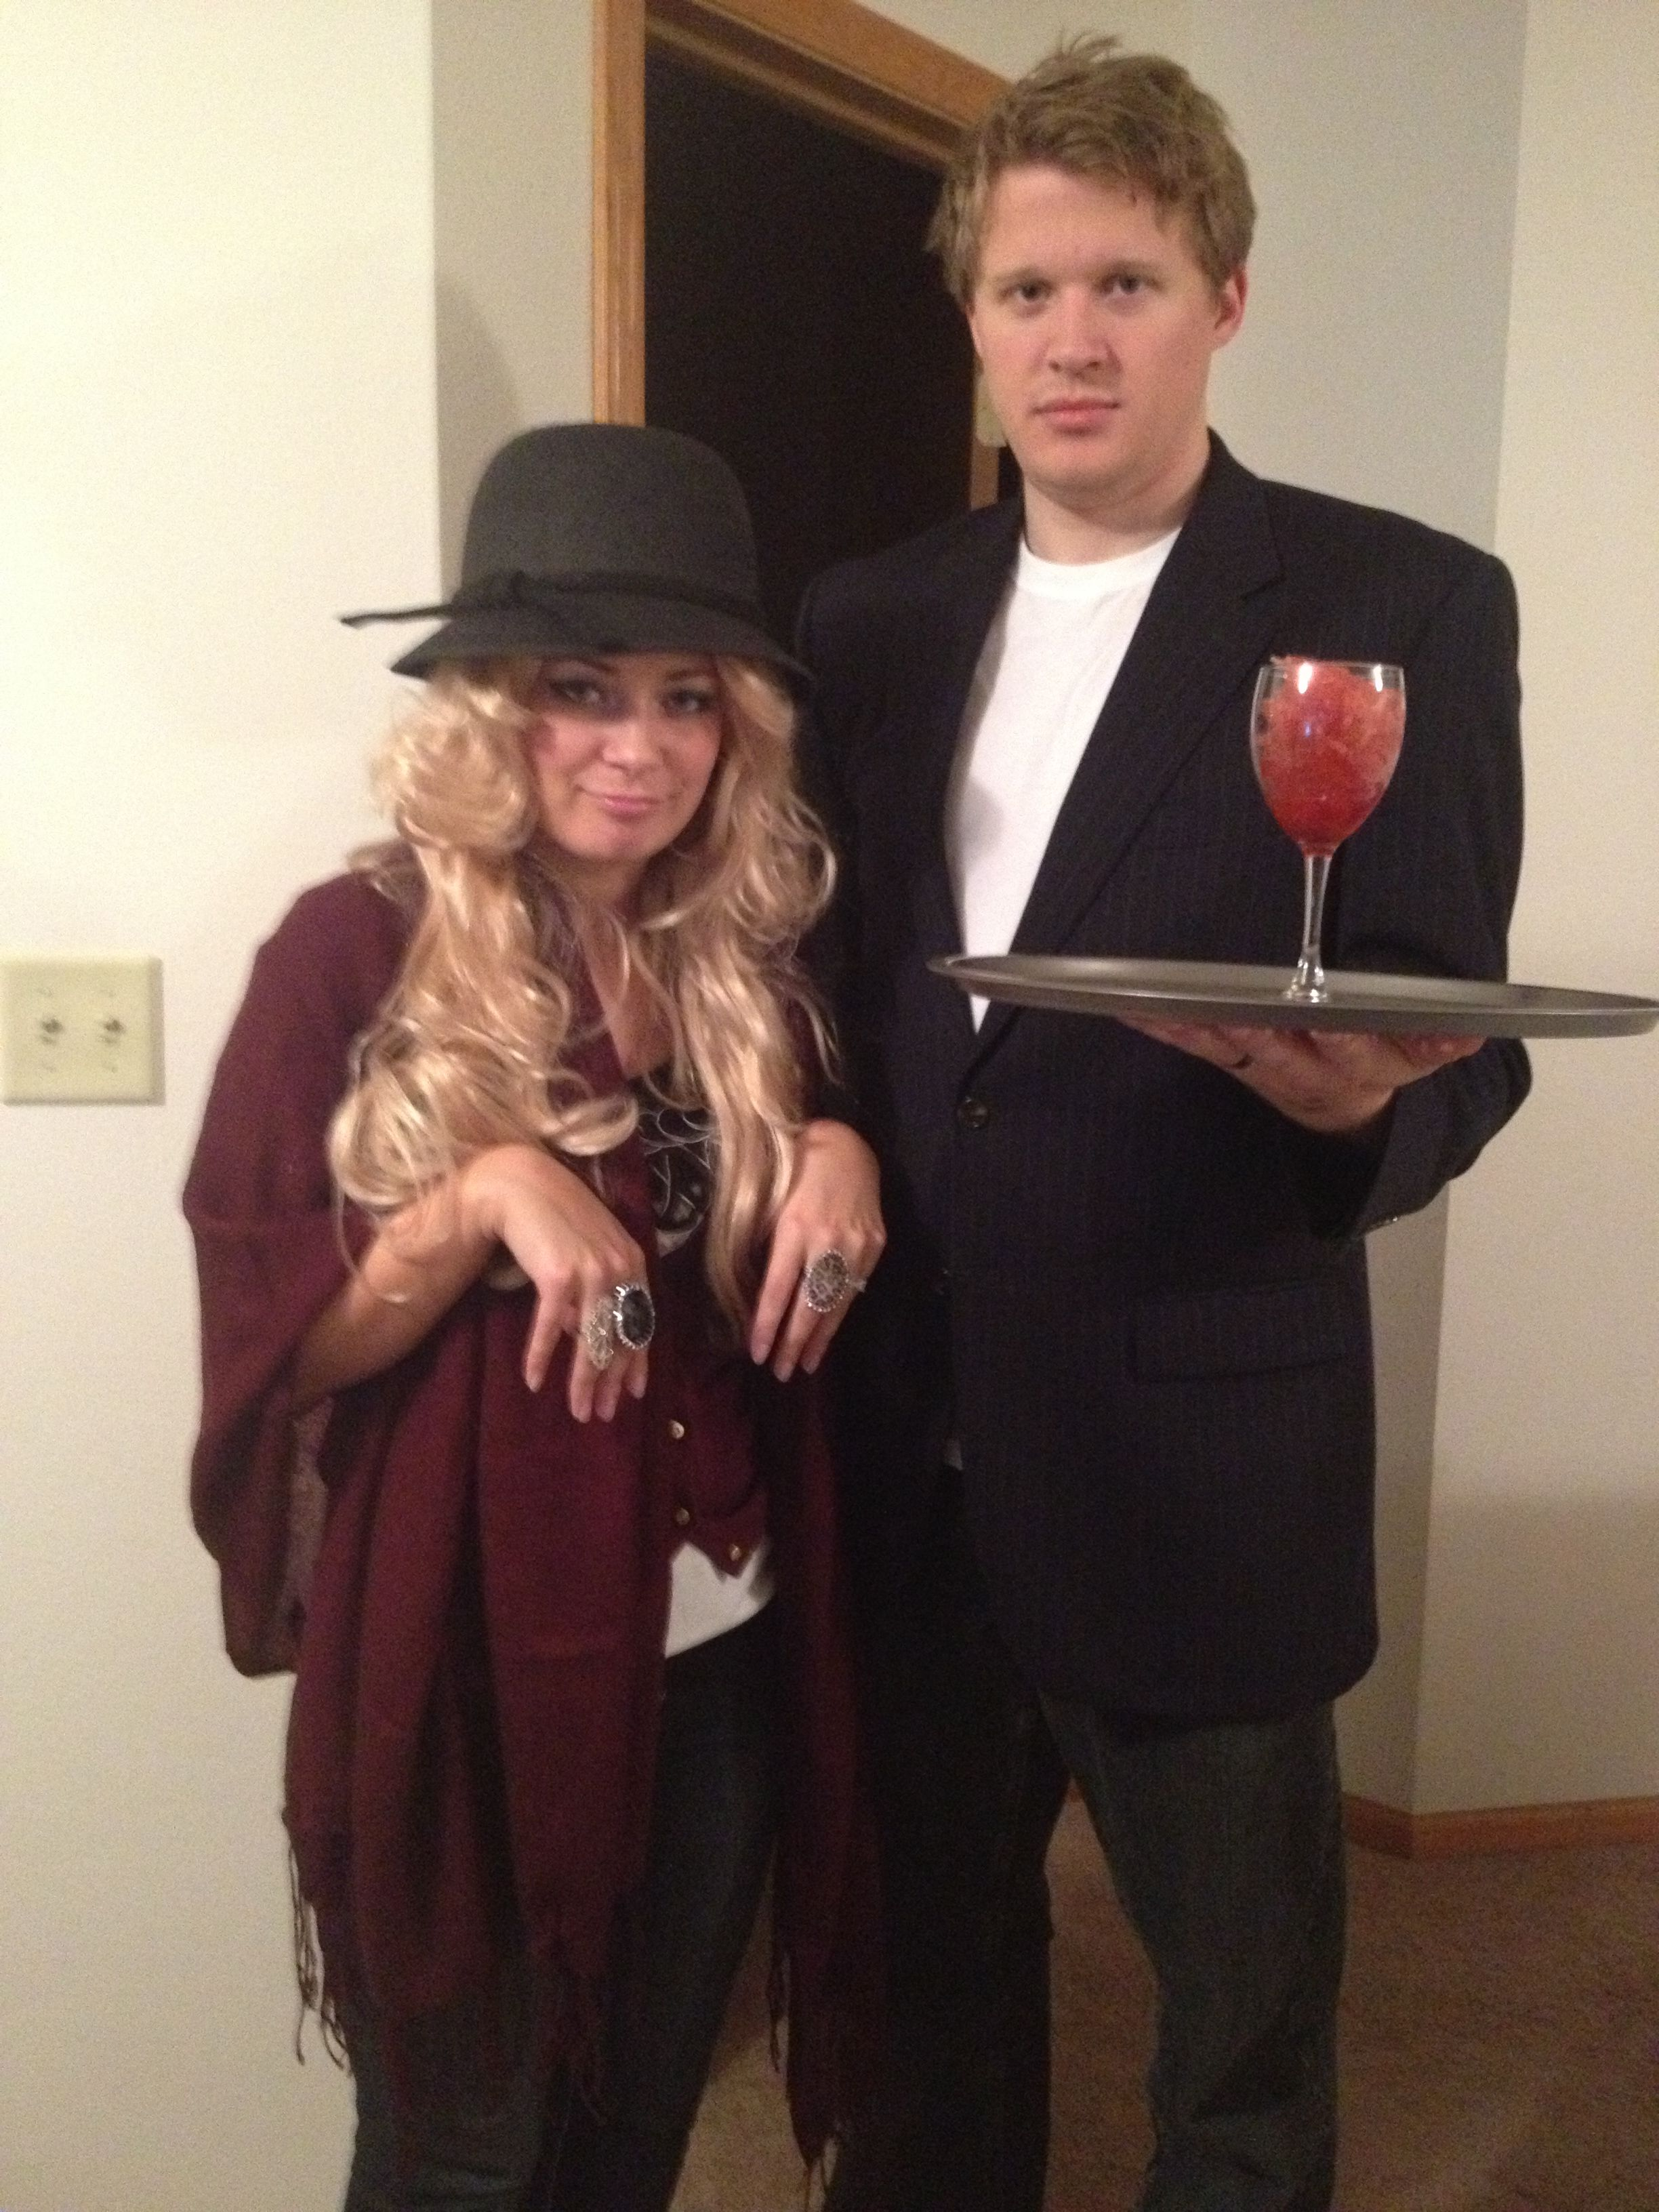 Very Mary Kate and Bodyguard halloween costume | Costumes ...